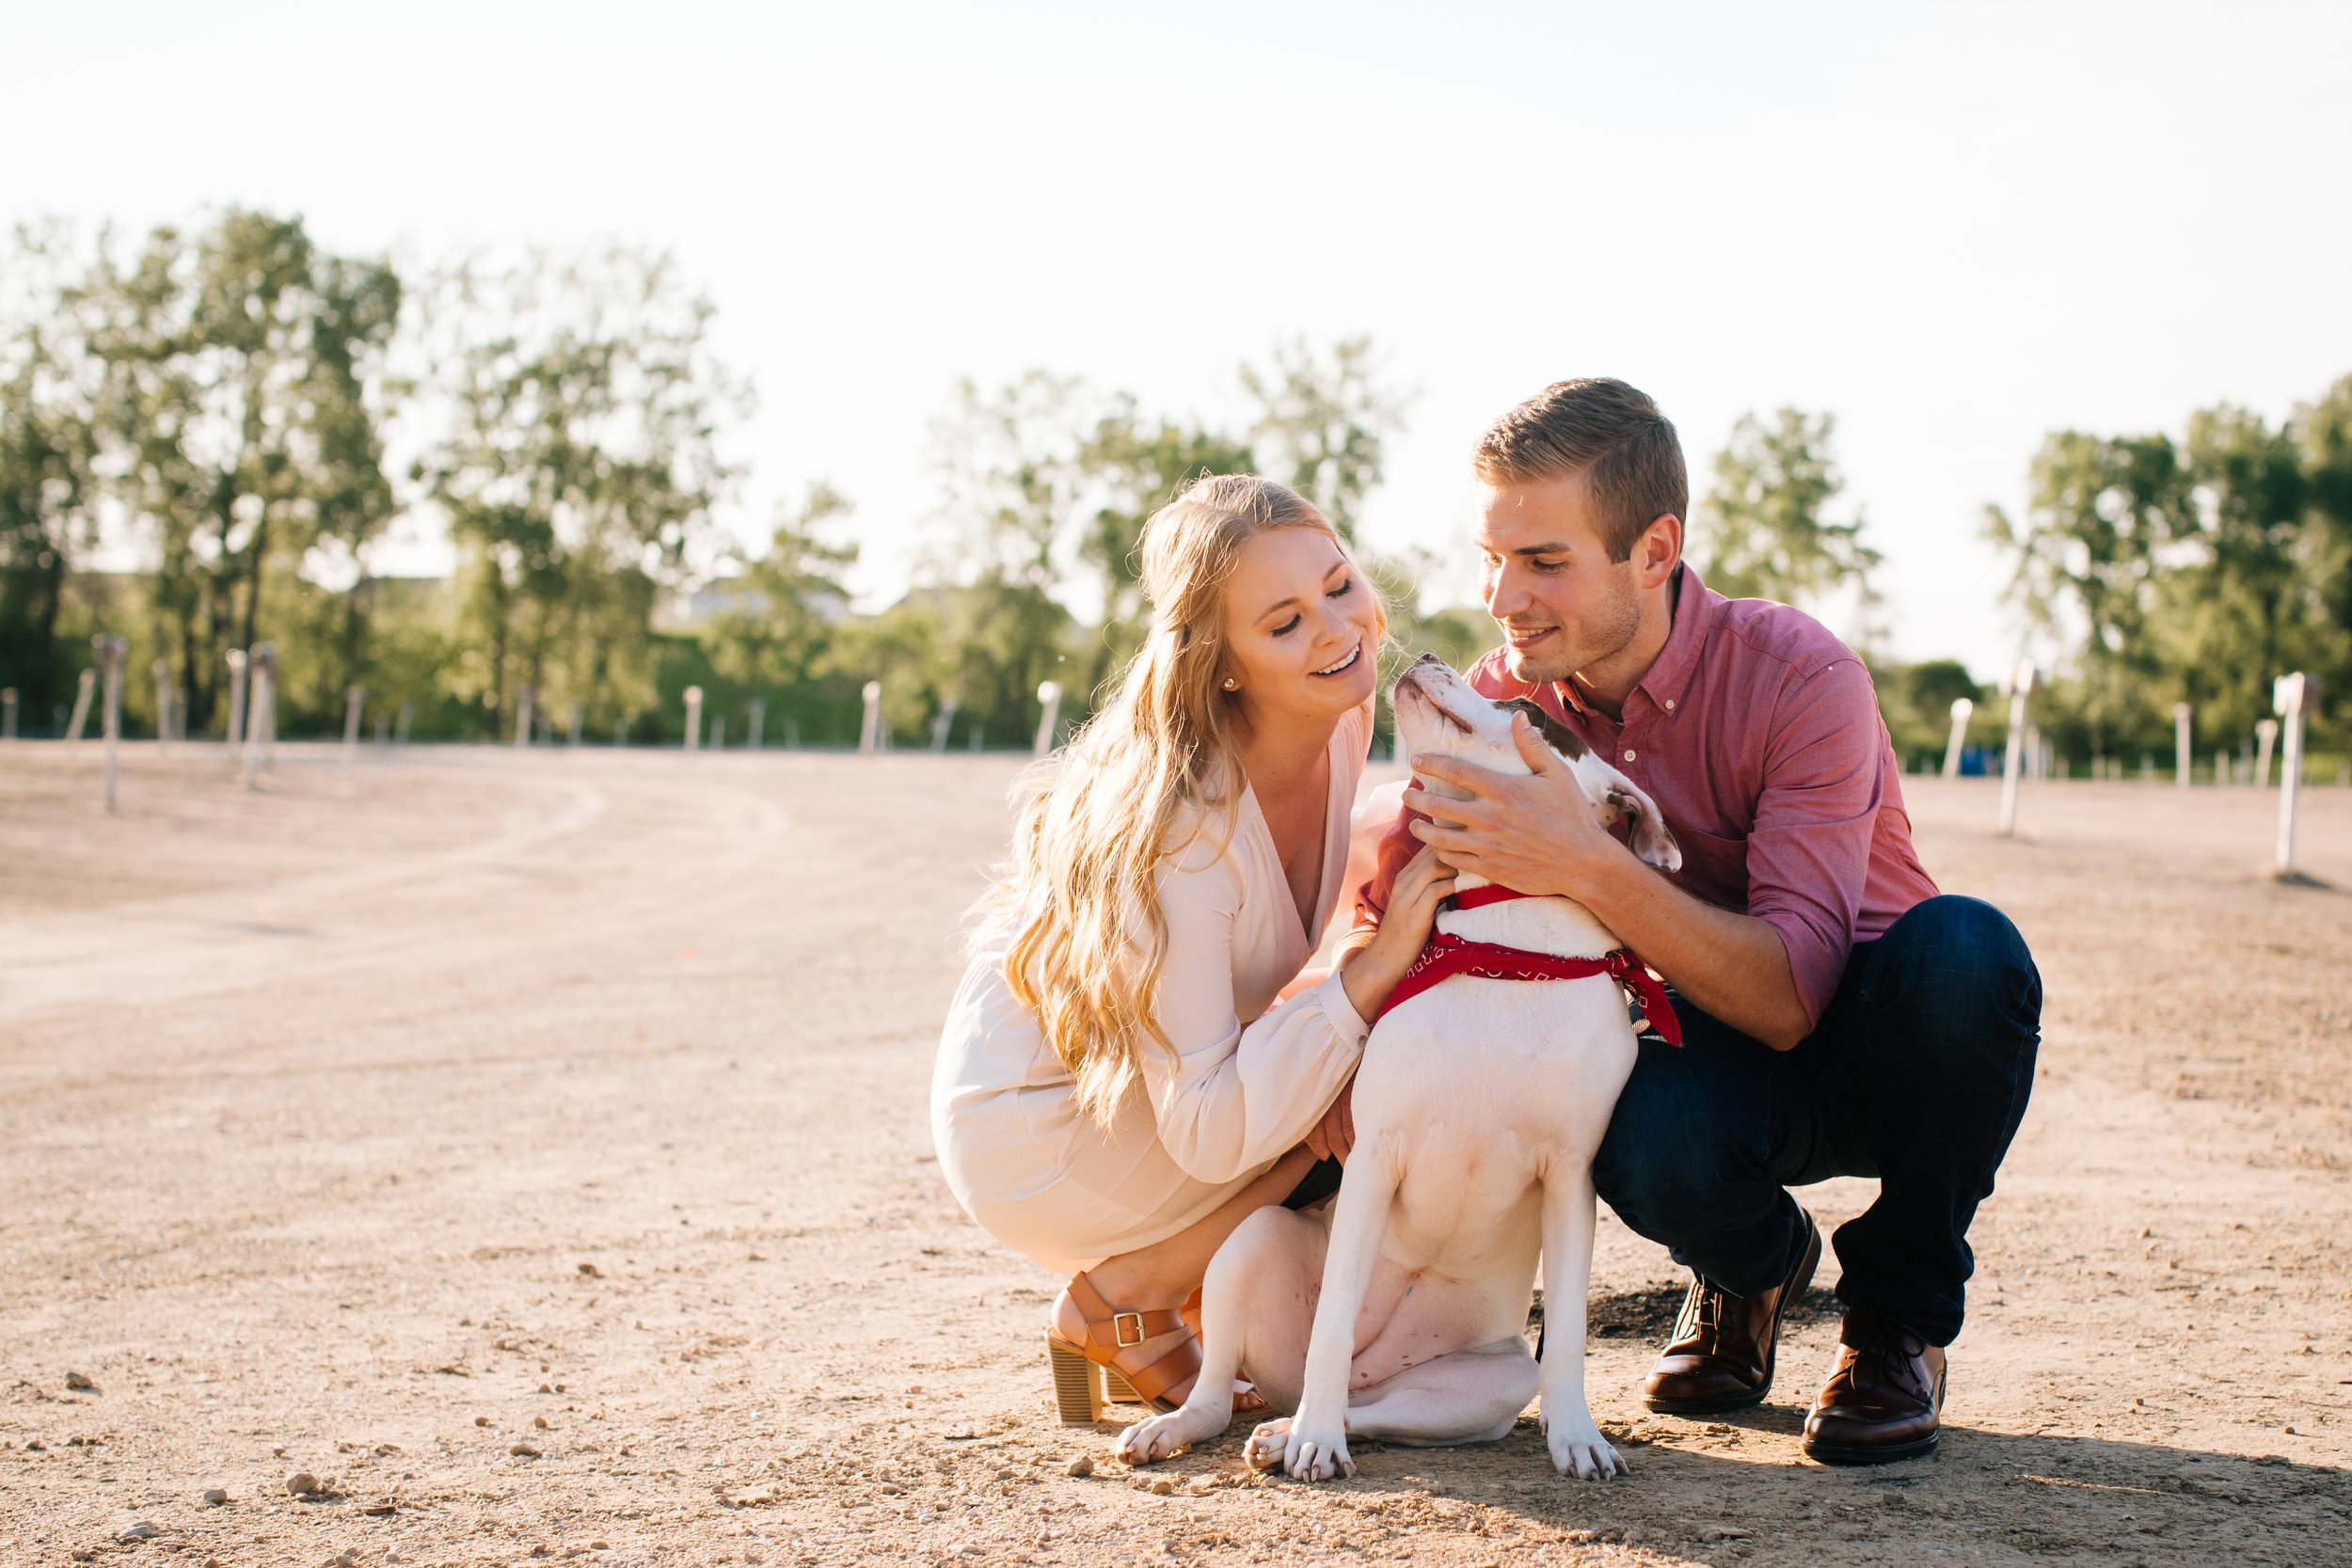 Themed Engagement Session - Dog and Drive In